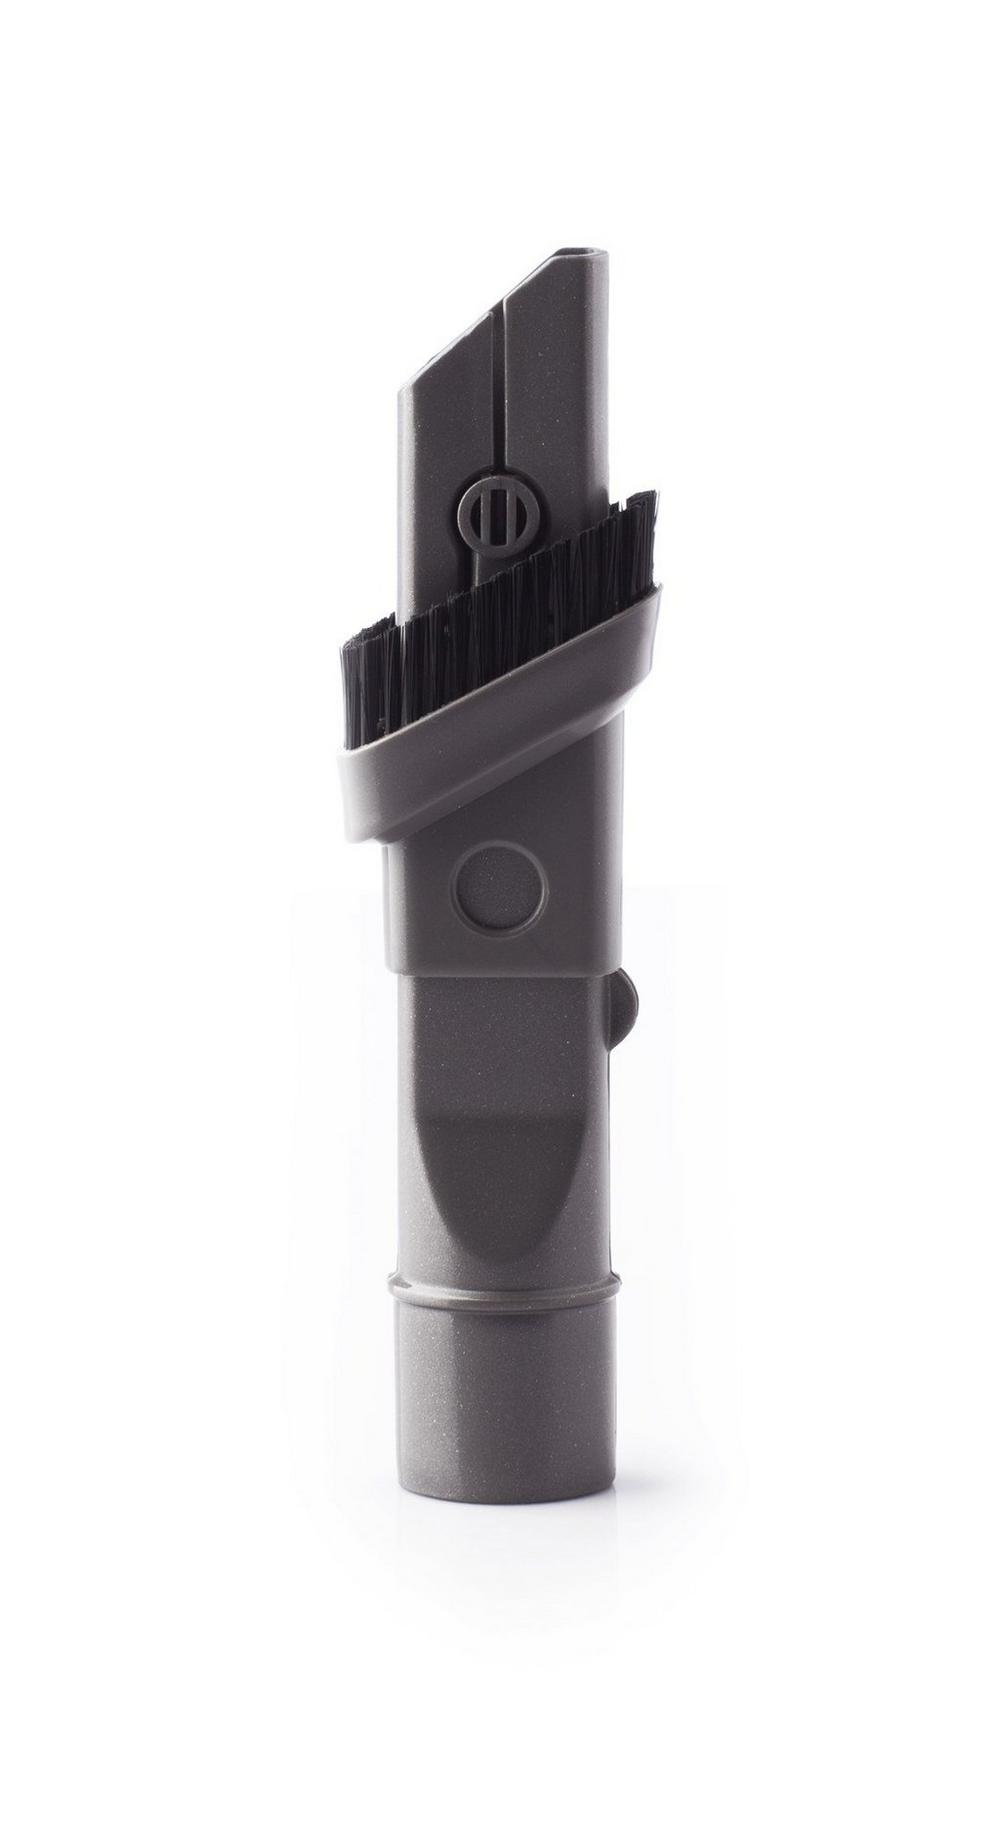 2-in-1 Crevice + Dusting Brush Tool for Hoover Bagless Uprights